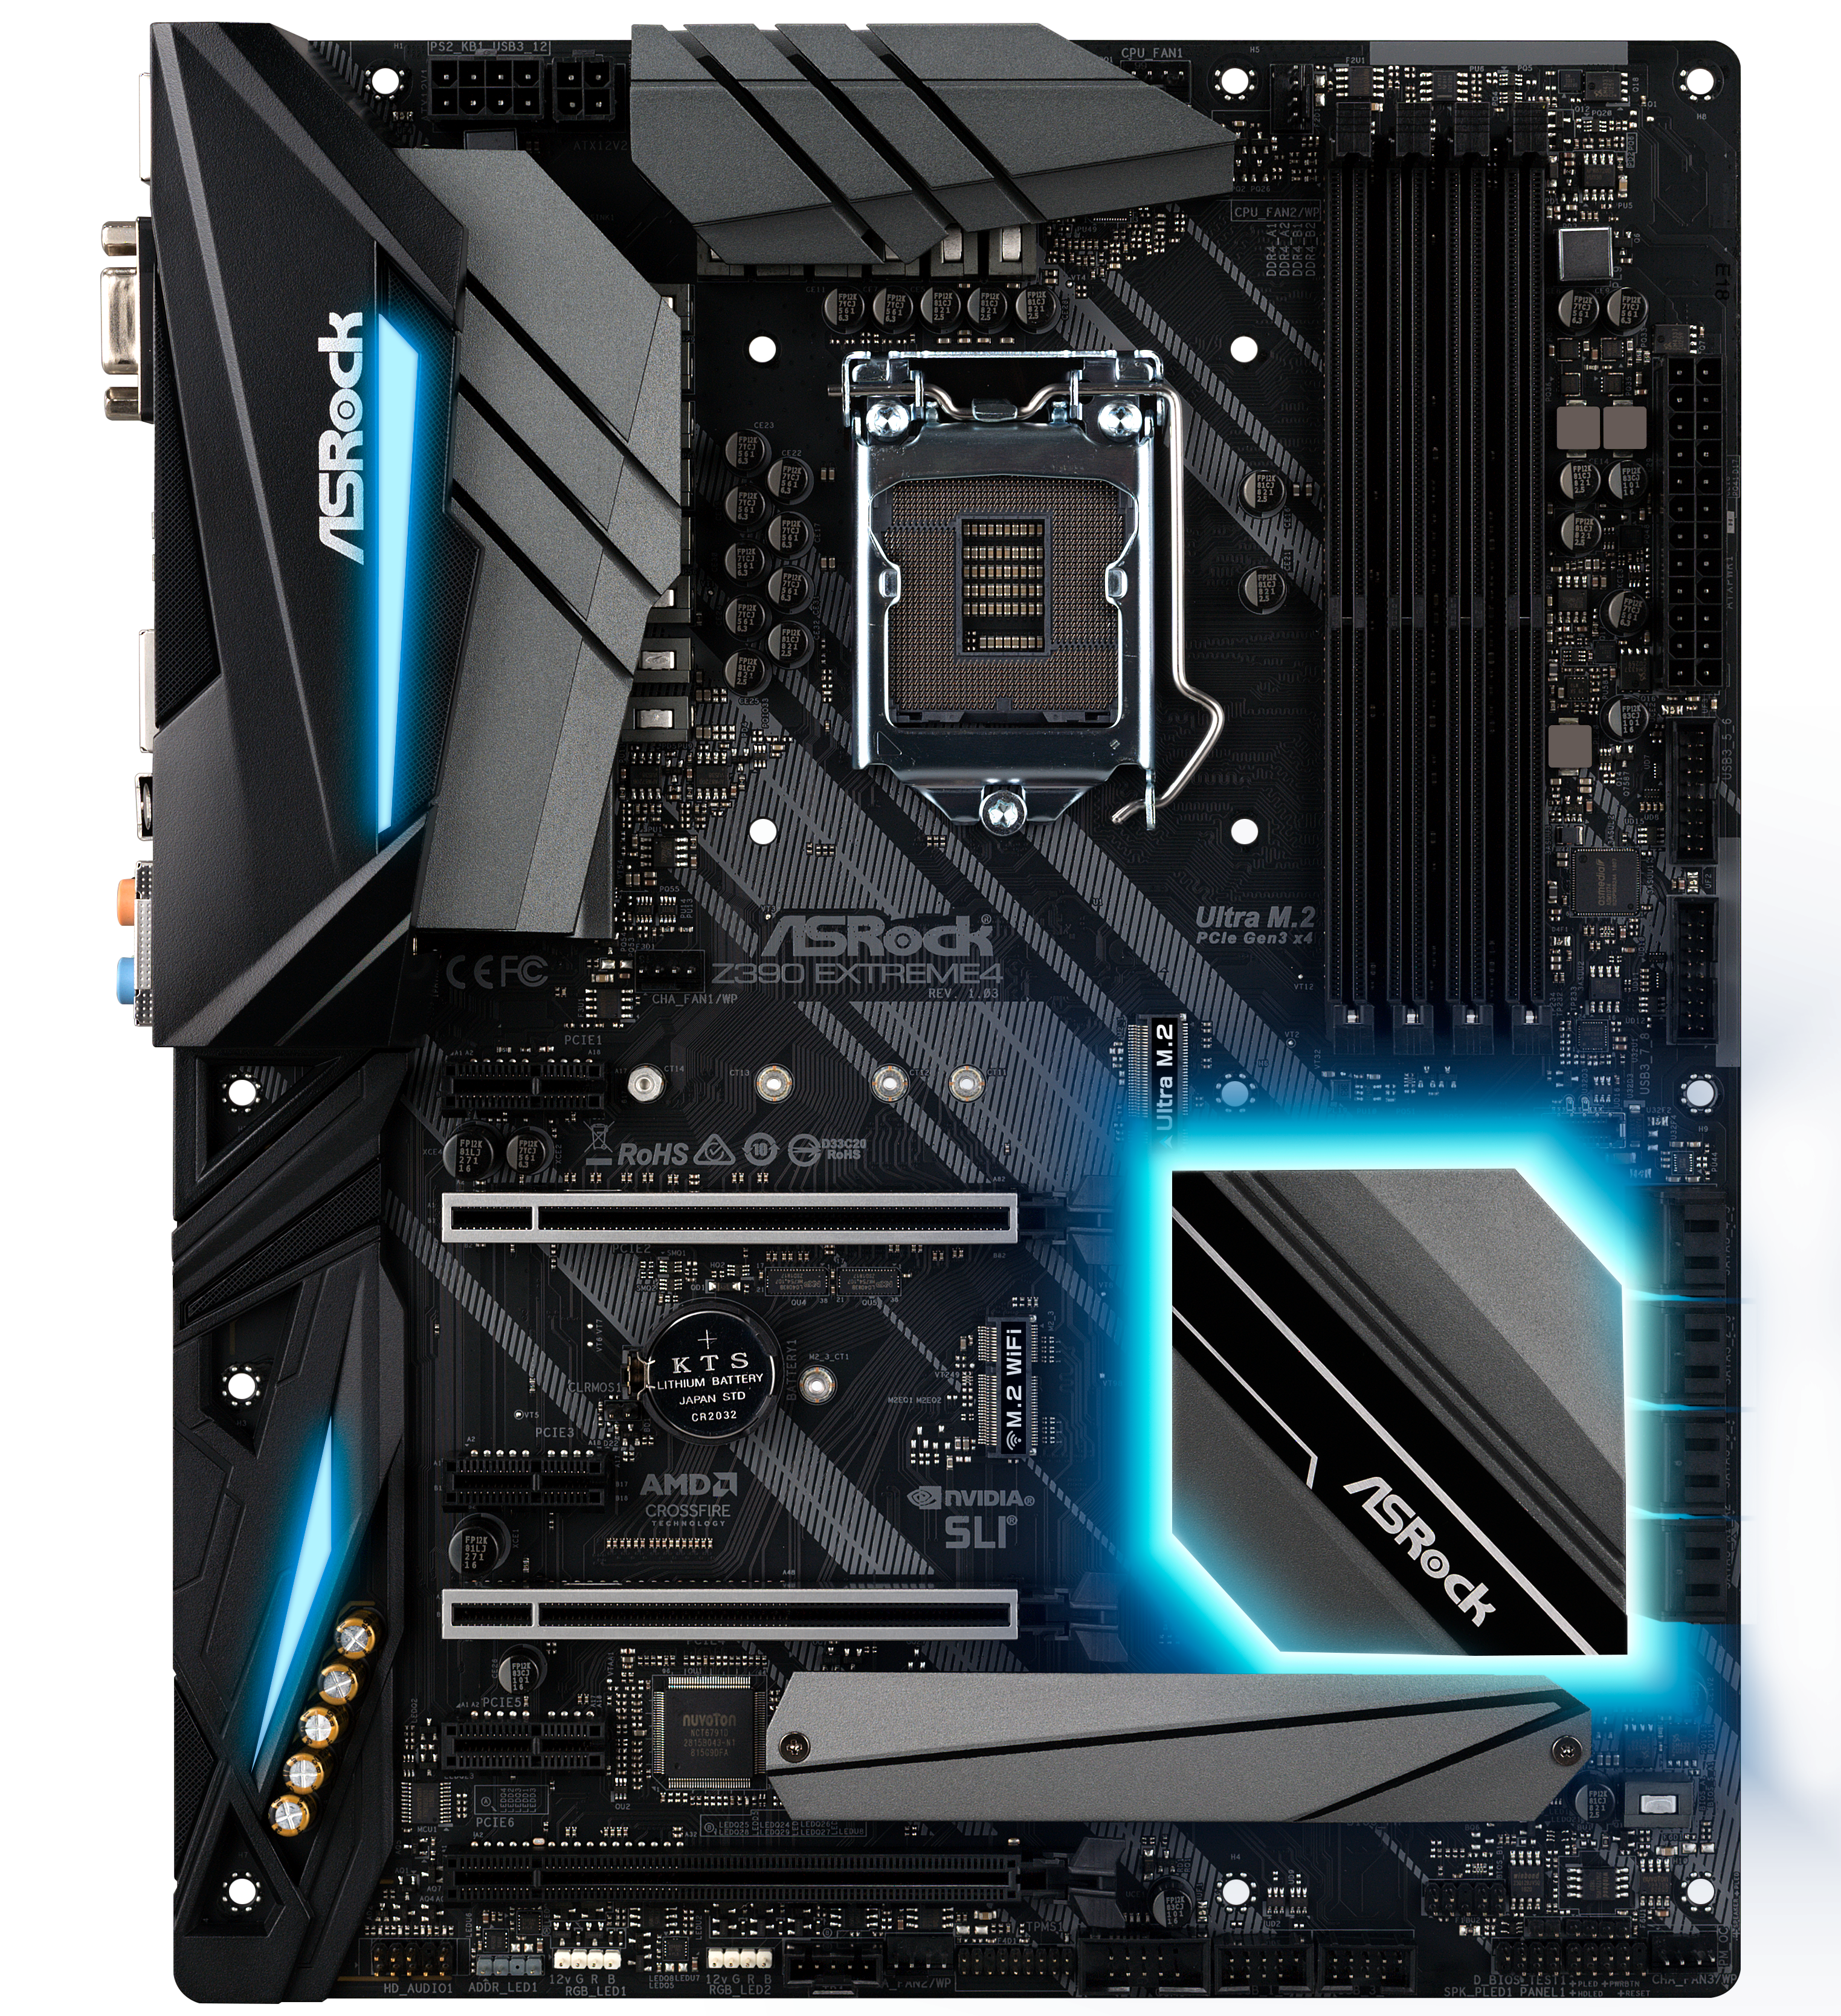 ASRock Z390 Extreme4 - Intel Z390 Motherboard Overview: 50+